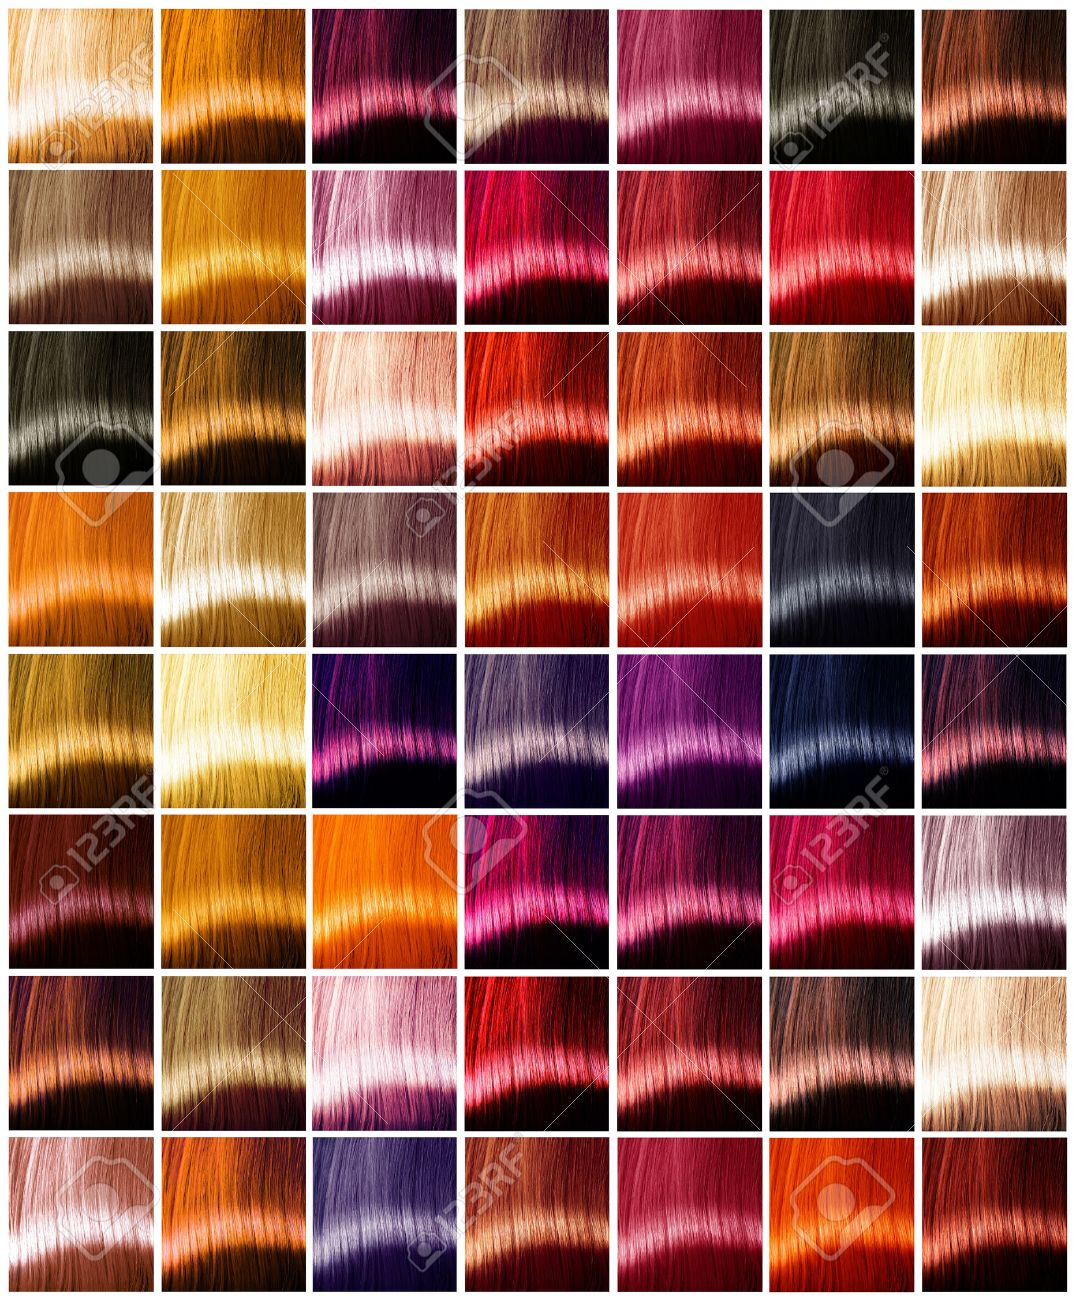 Hair Colors Palette Tints Dyed Hair Color Sample Stock Photo Picture And Royalty Free Image Image 39207640